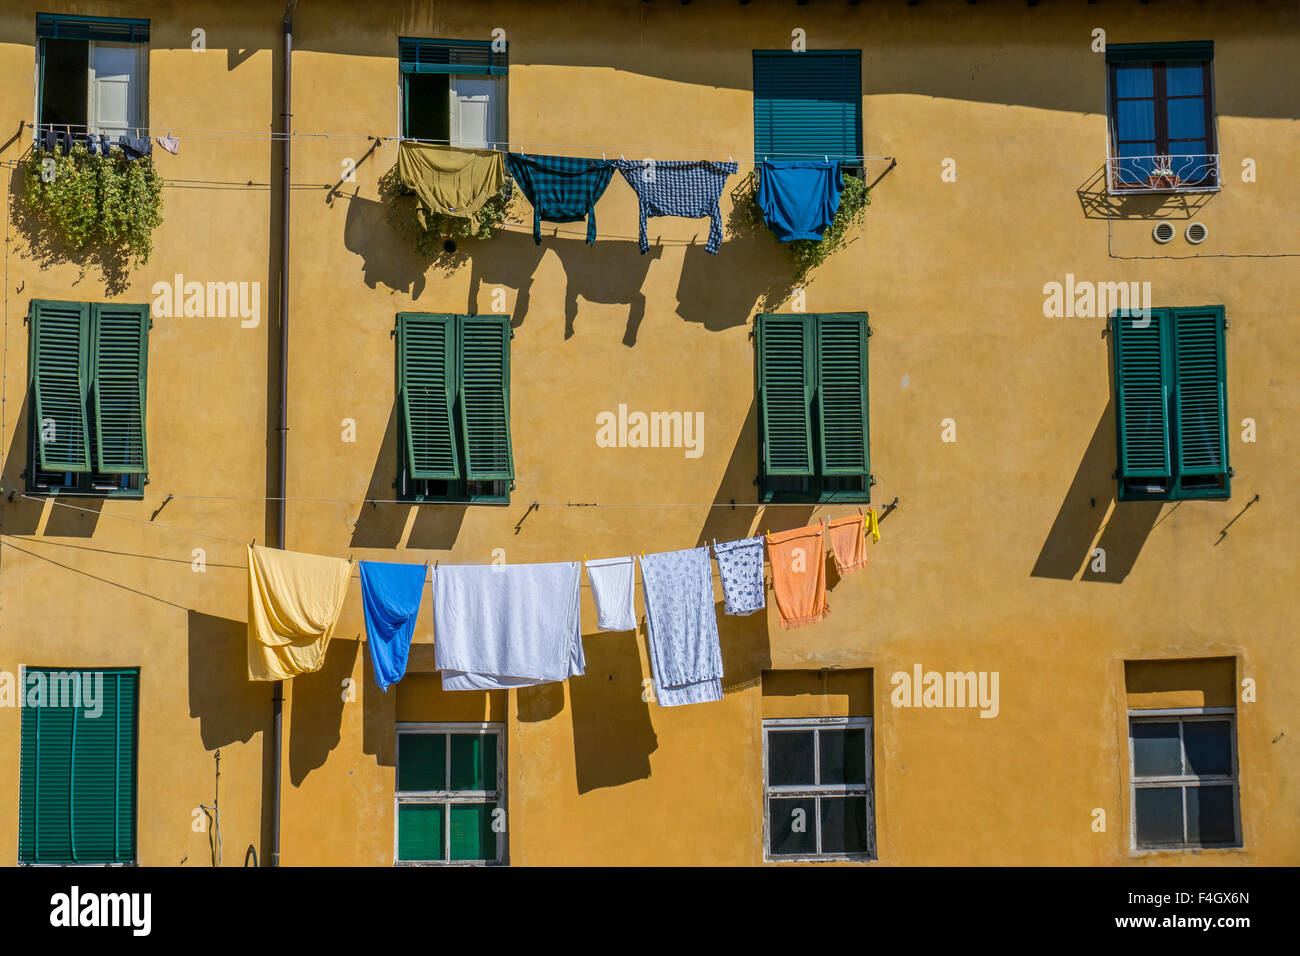 Piazza Anfiteatro, Lucca, Tuscany, Italy, Europe Stock Photo